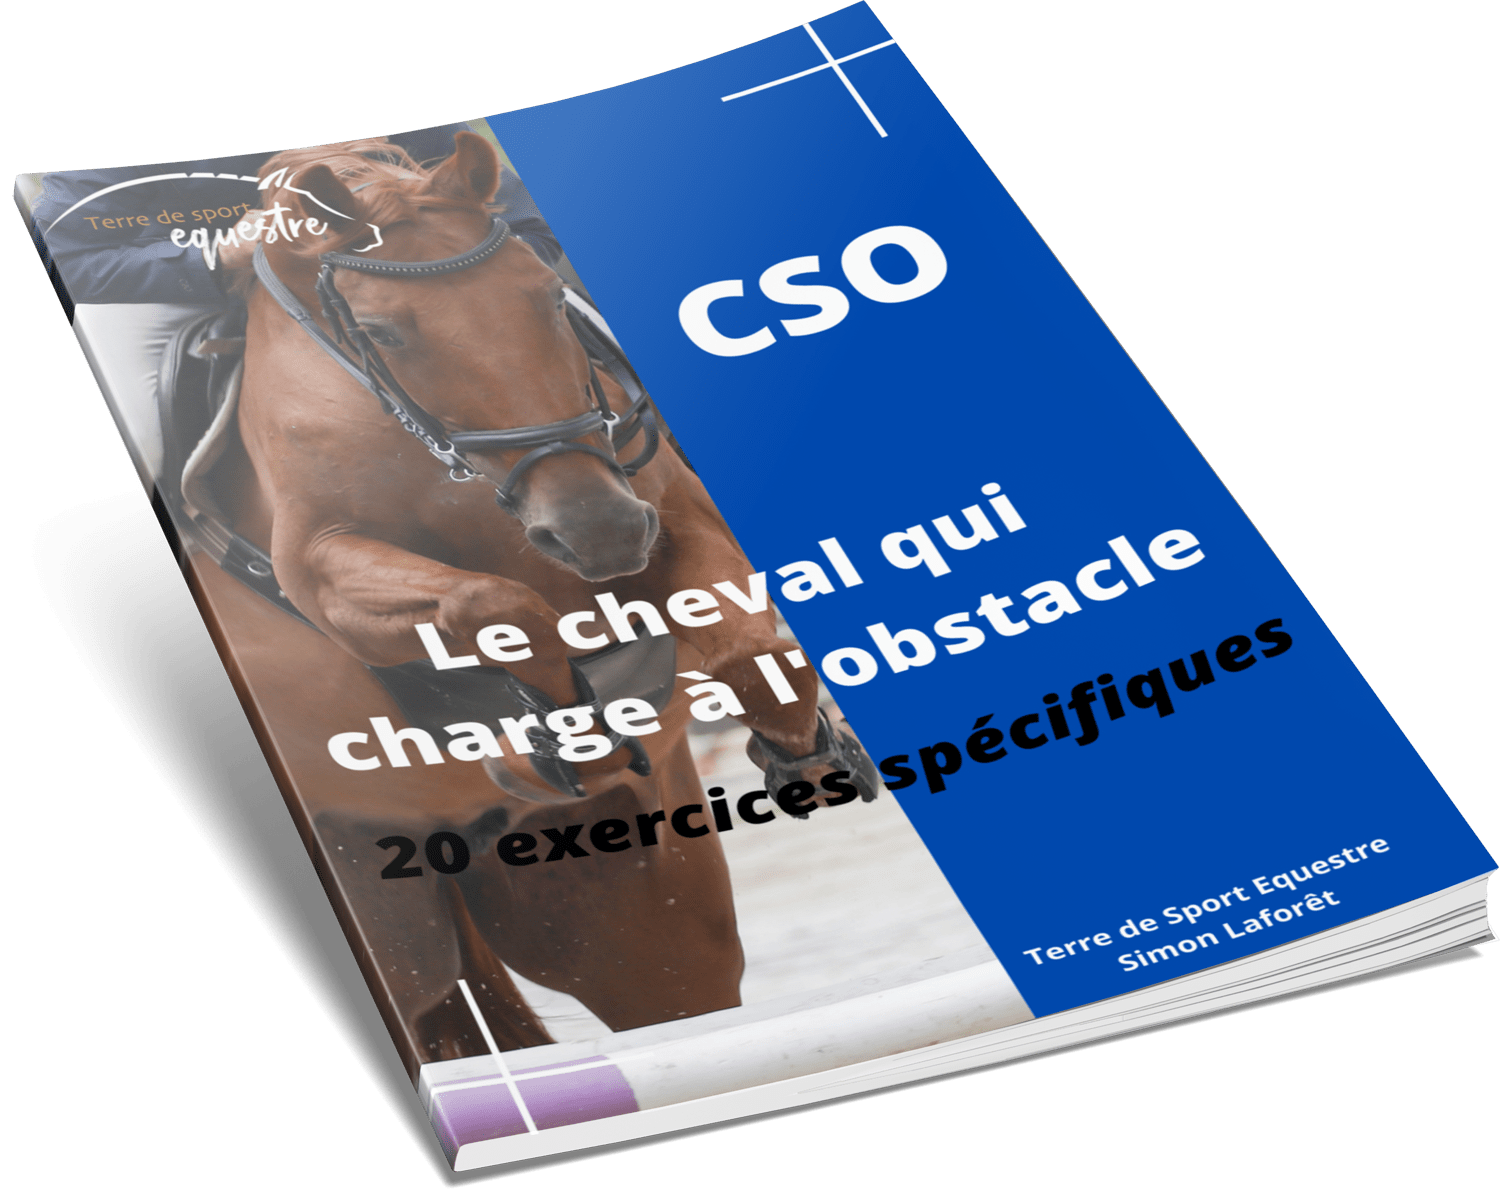 Le cheval qui charge a l obstacle